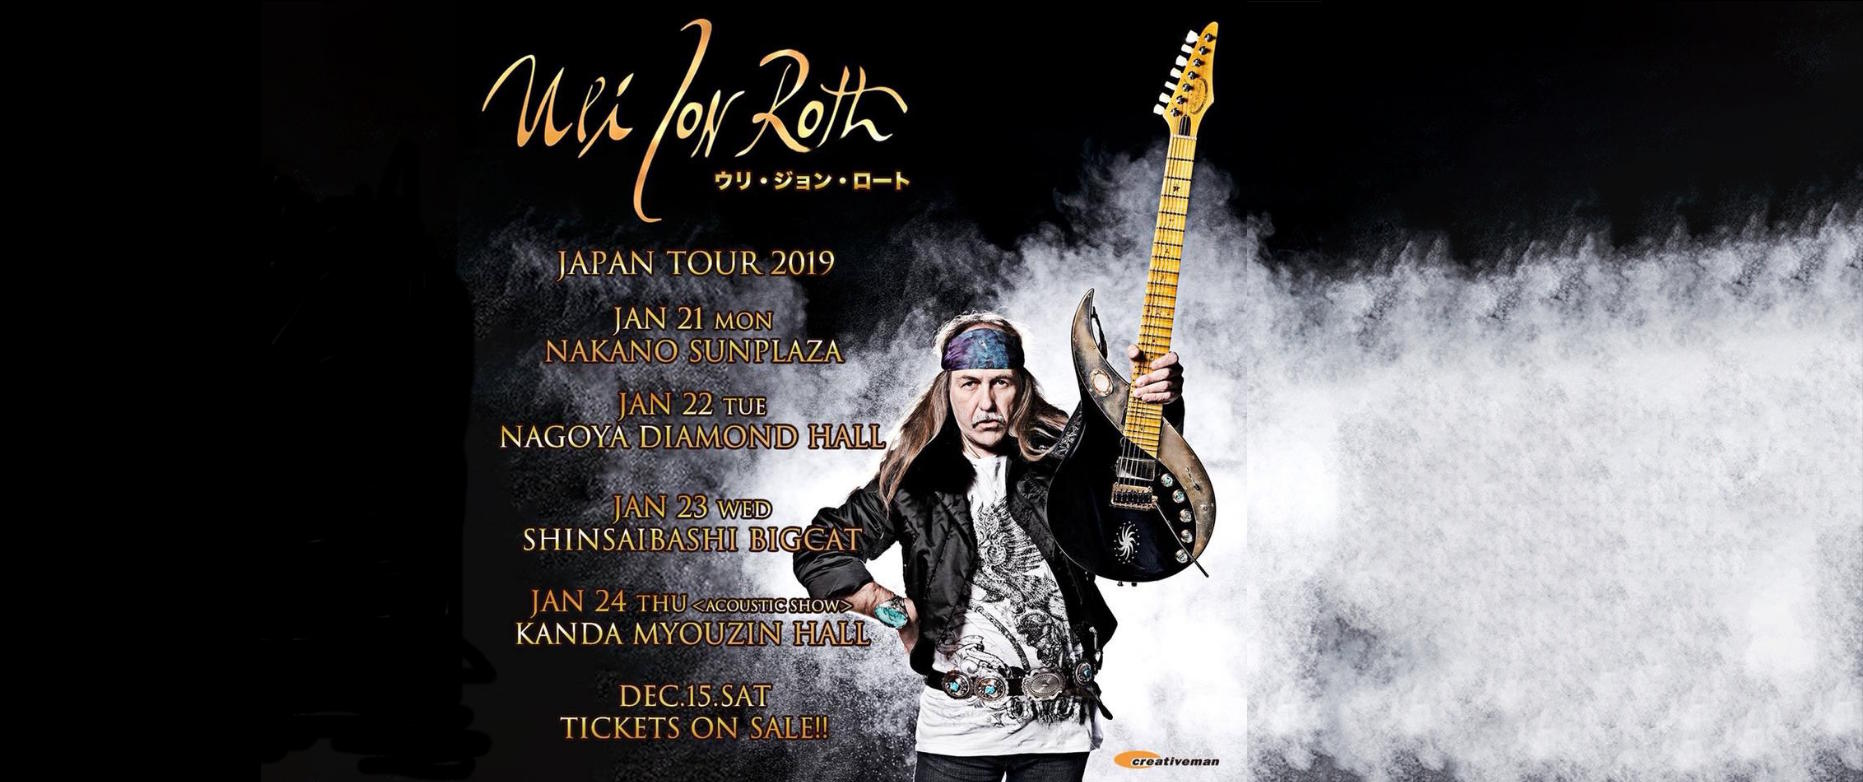 Phil X with Uli Jon Roth in Japan